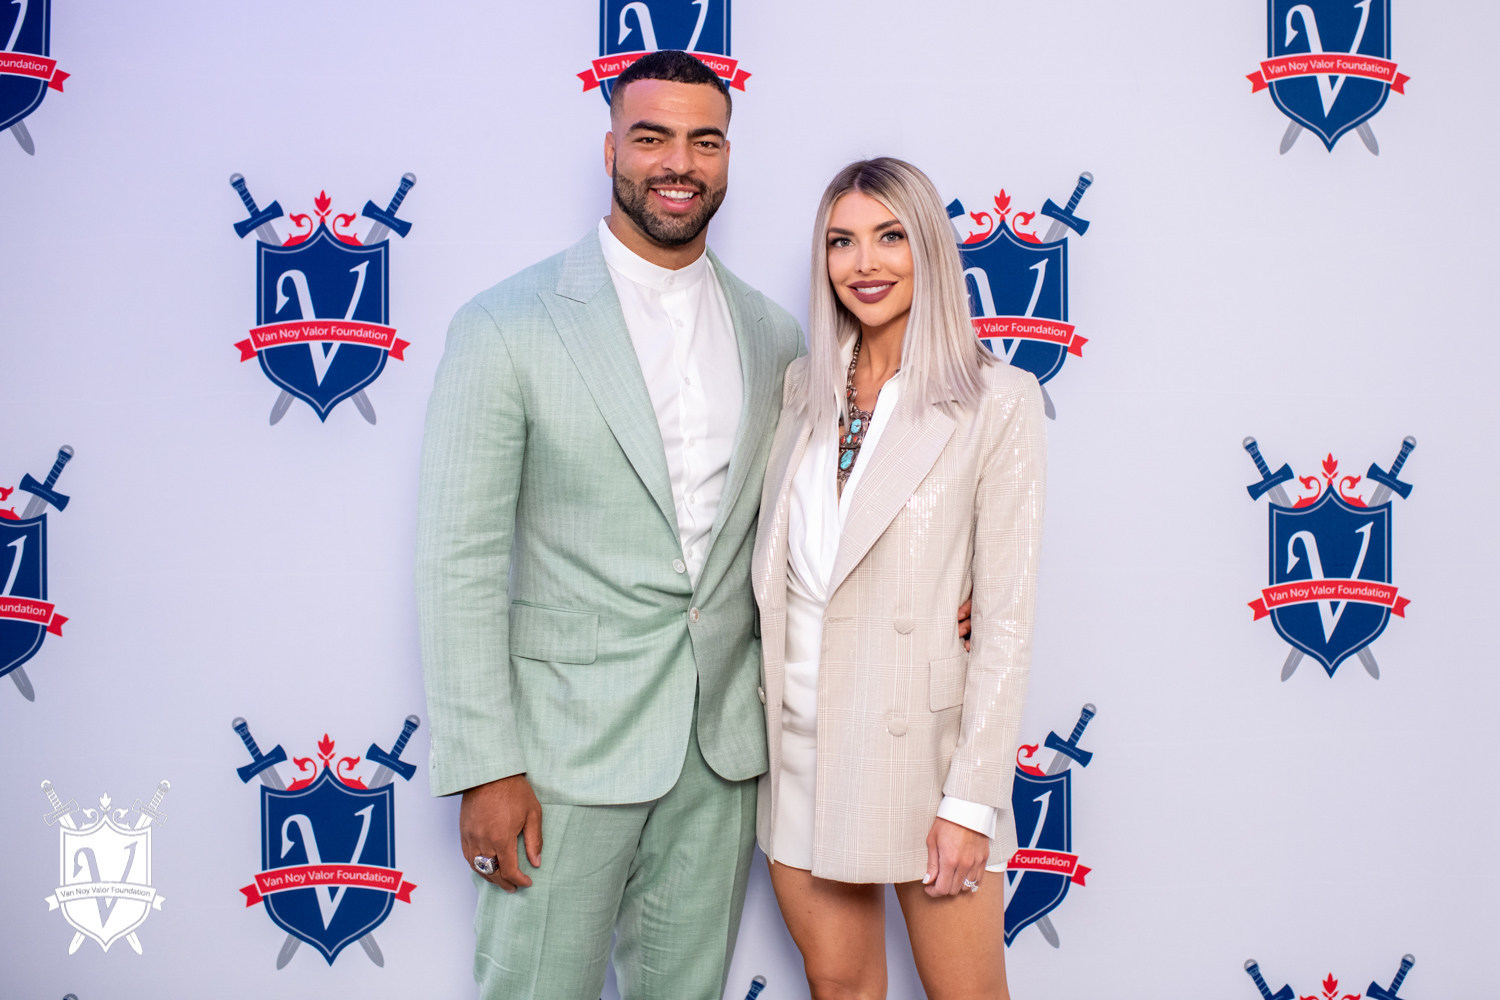 Kyle Van Noy of the New England Patriots and his wife, Marissa